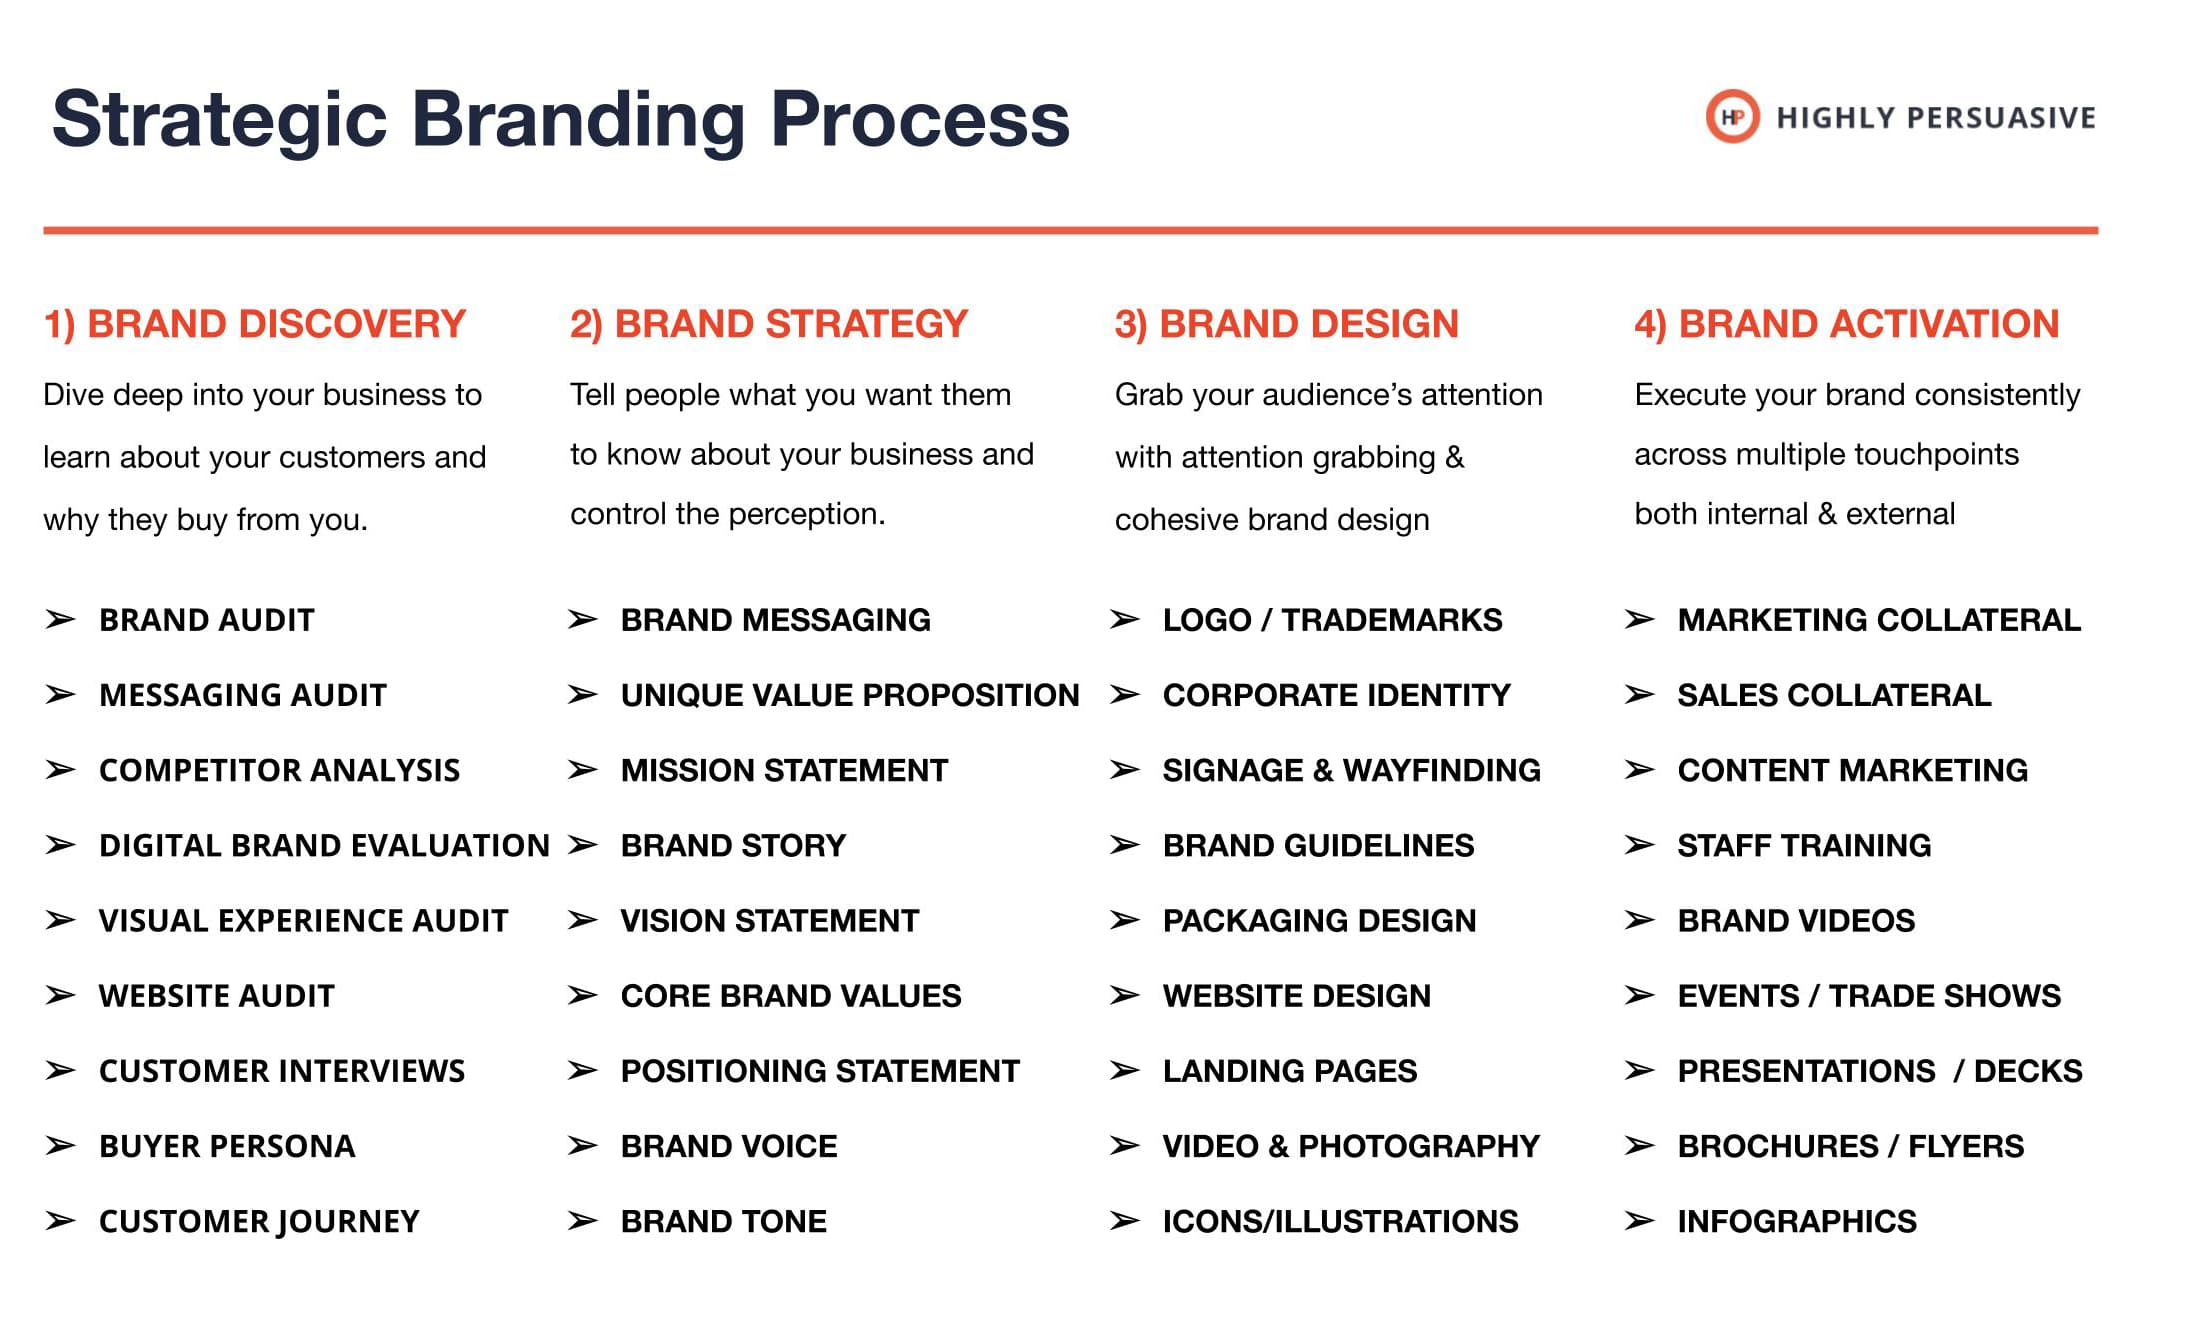 Strategic Branding Process